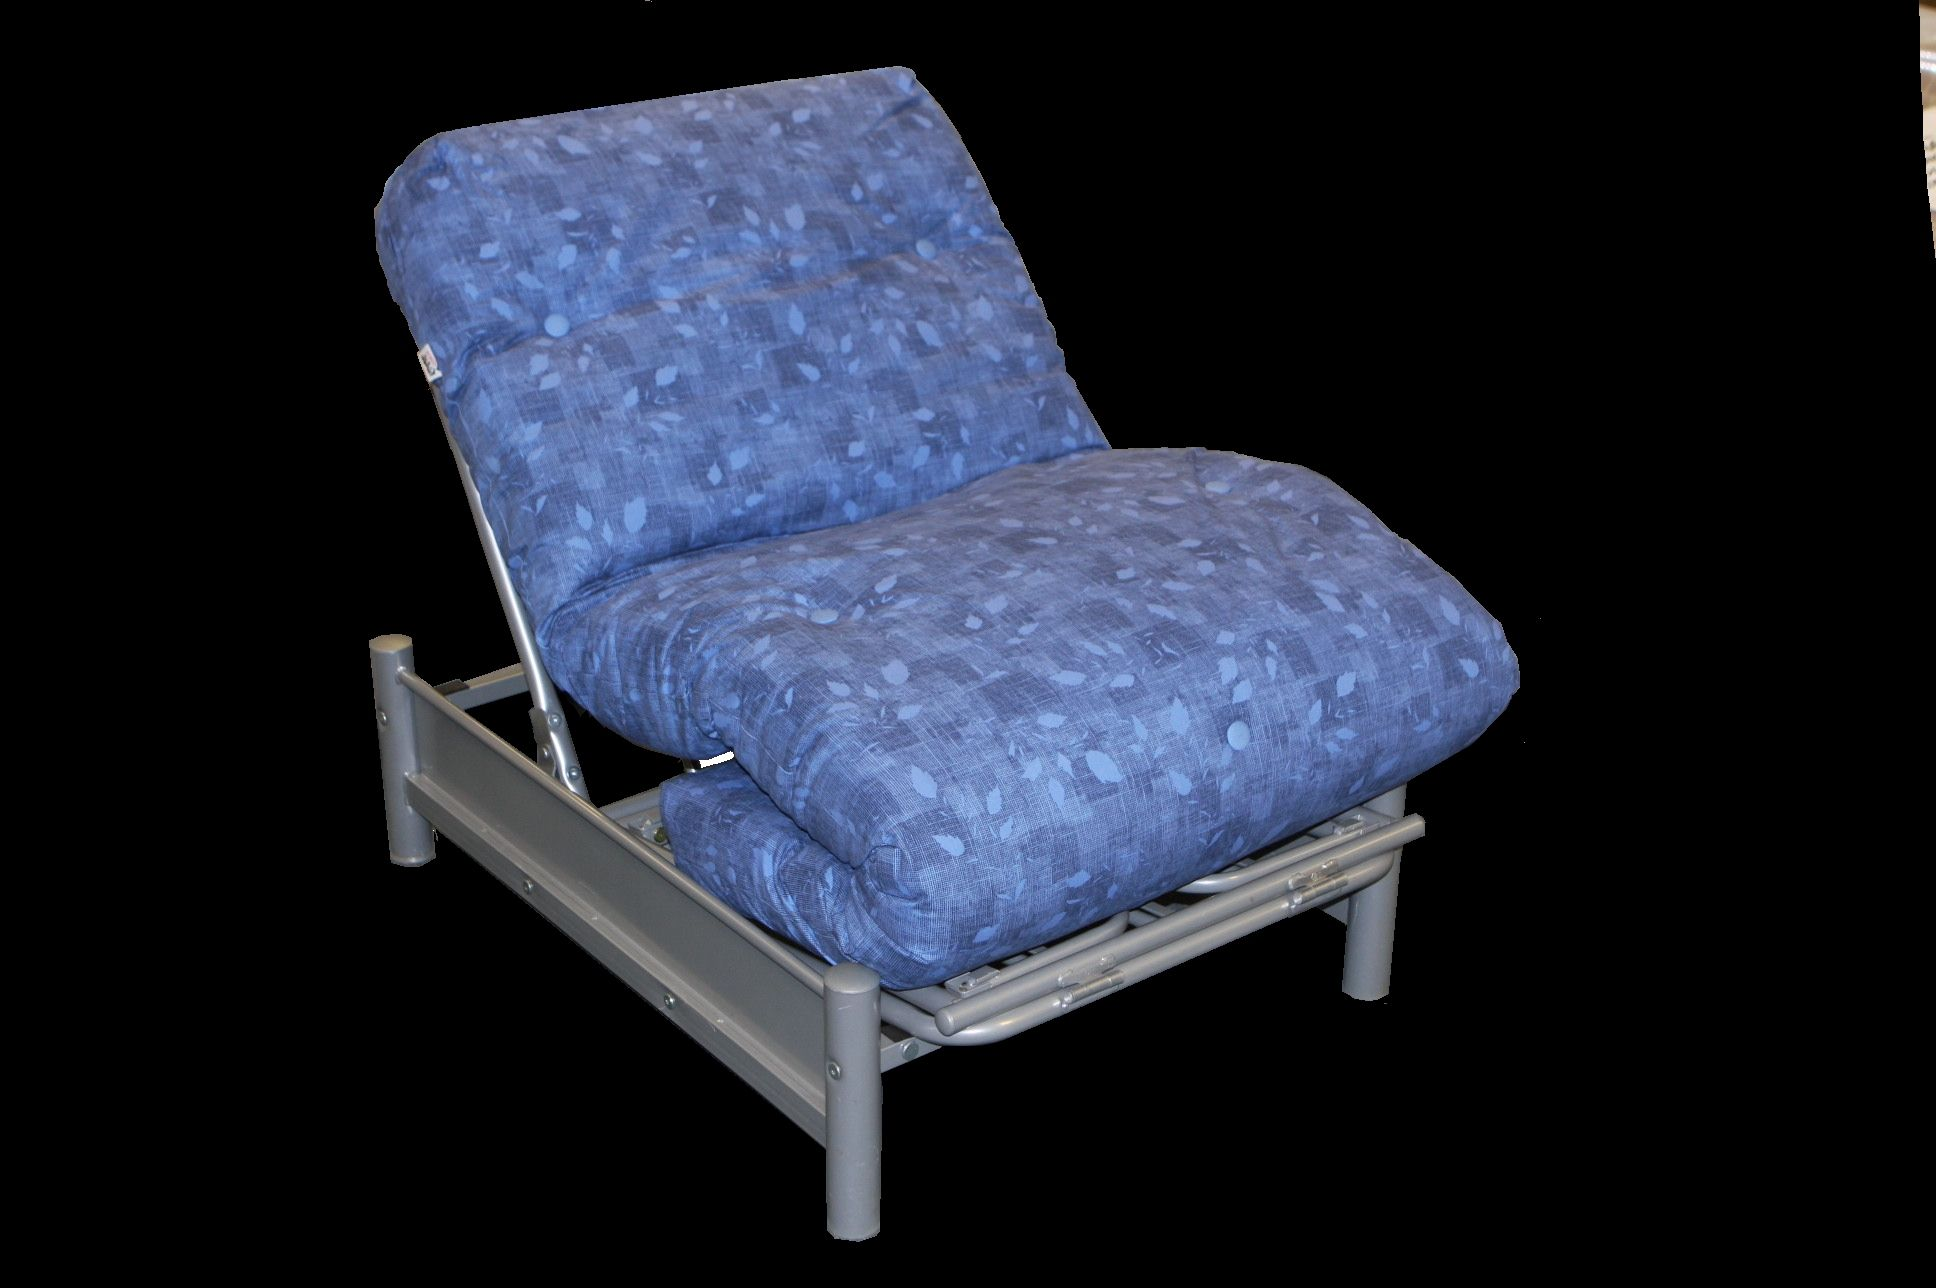 Single Chair Futon 159 95 Converts Easily Into A Size Bed The Frame And Hinges Make It Easy To Convert For Occasional Guest